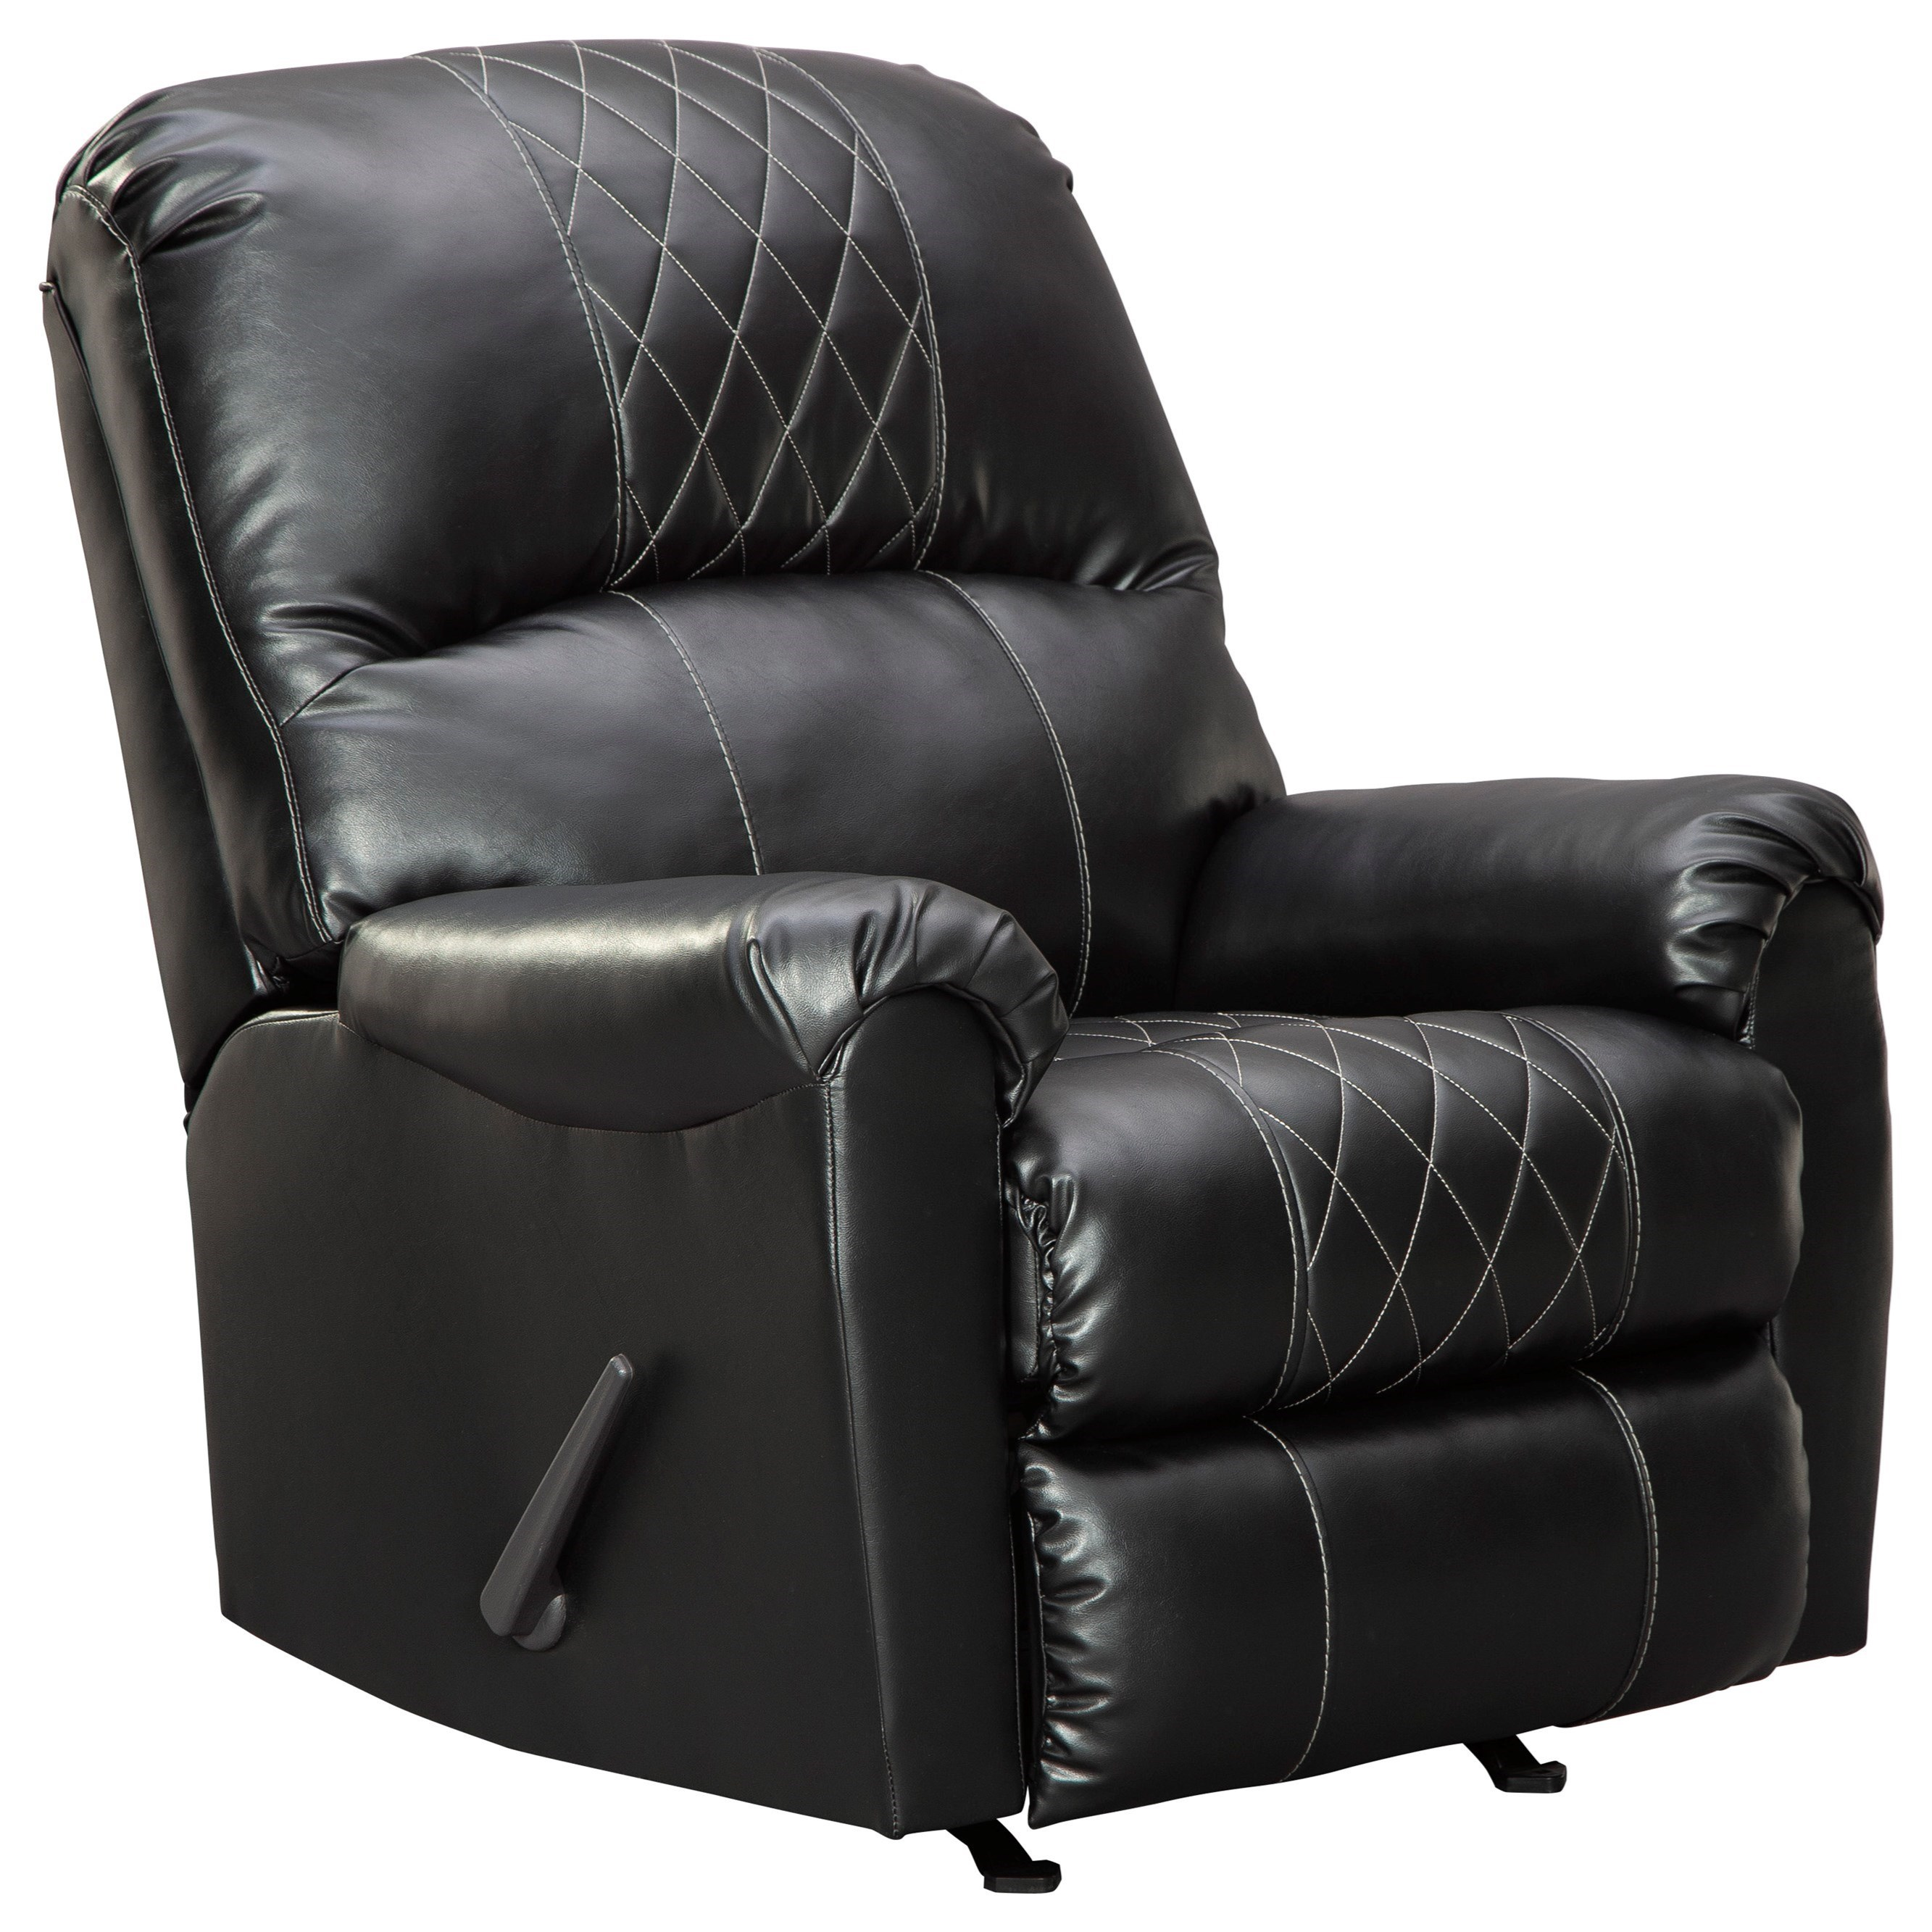 Betrillo Rocker Recliner by Ashley (Signature Design) at Johnny Janosik